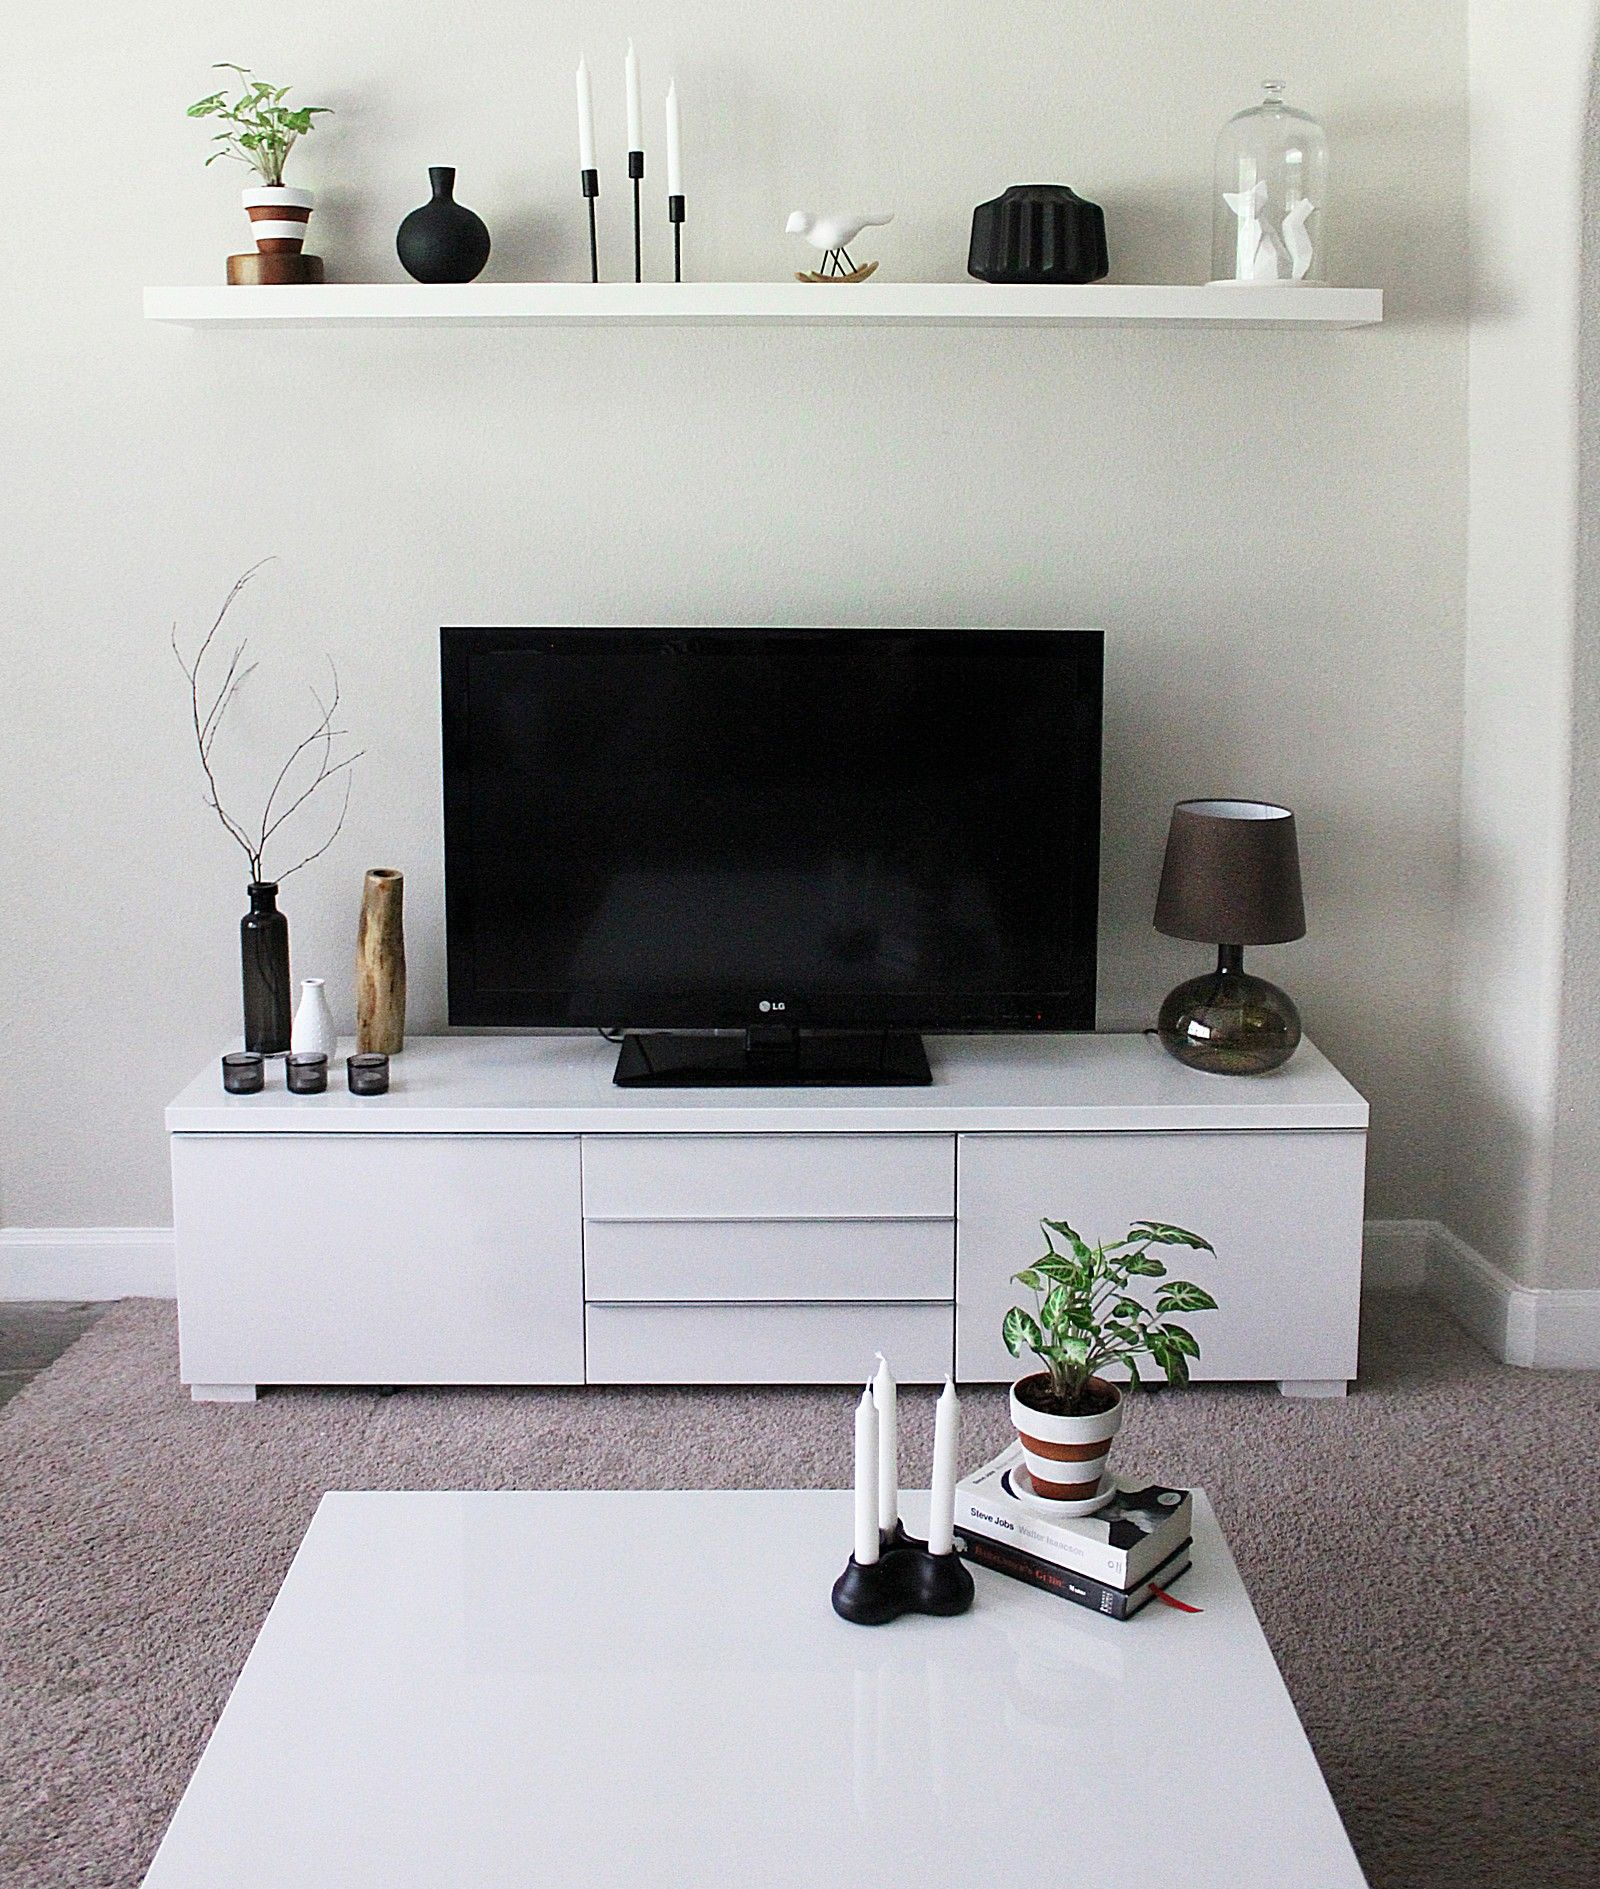 Minimalist TV Stand And Cabinet IKEA Besta Since I Think Well Never Get The Out Of Living Room Might As Have A Pretty To Go With It